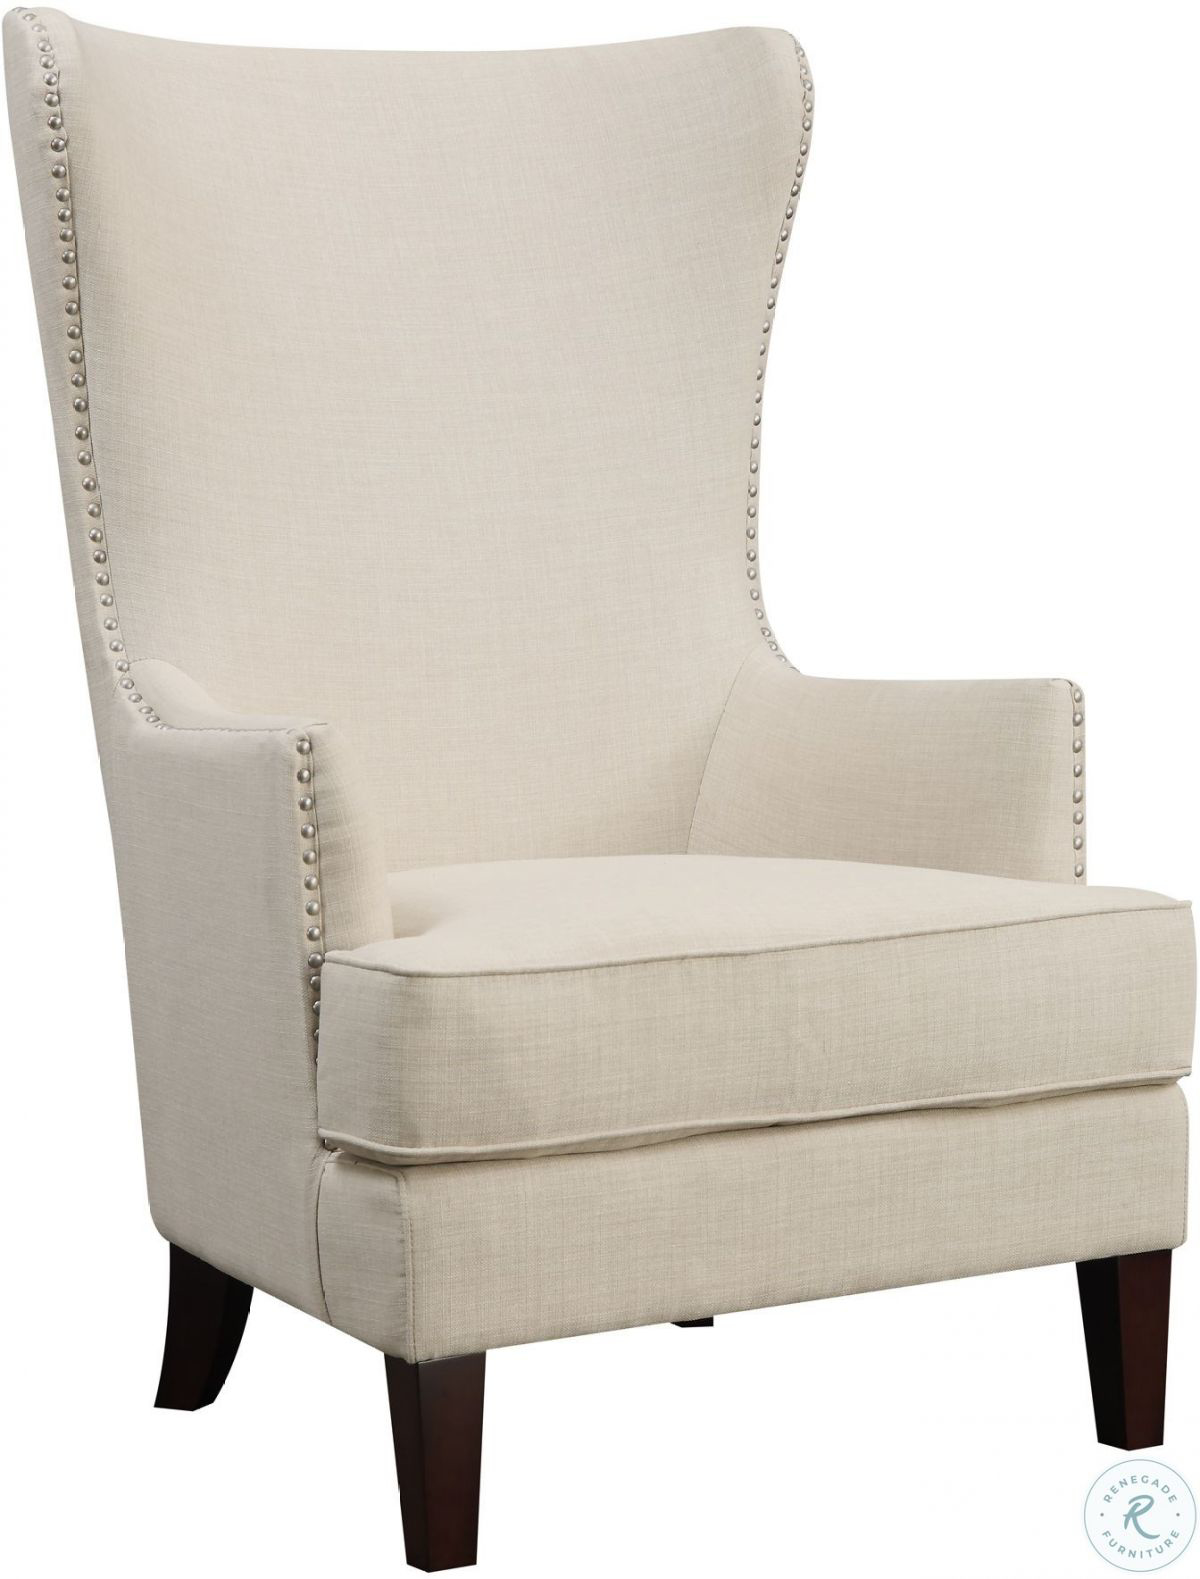 Picture of Kori Chair